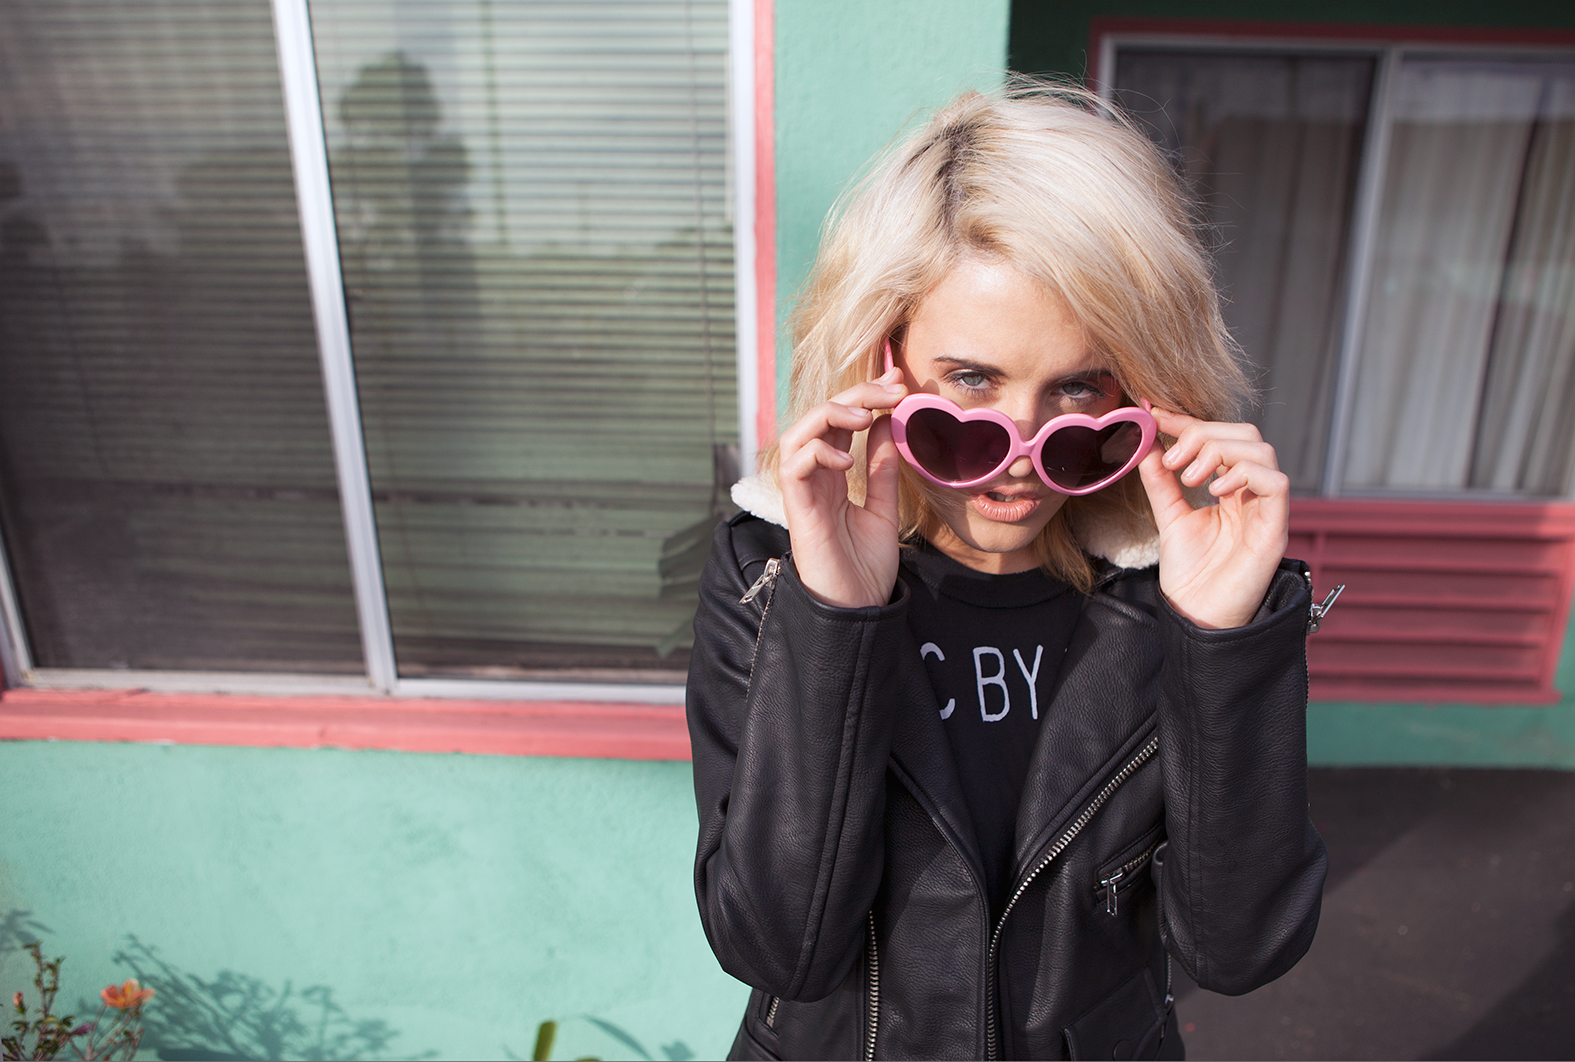 rachel lynch, heavy metal heart, i hate blonde, UNIF